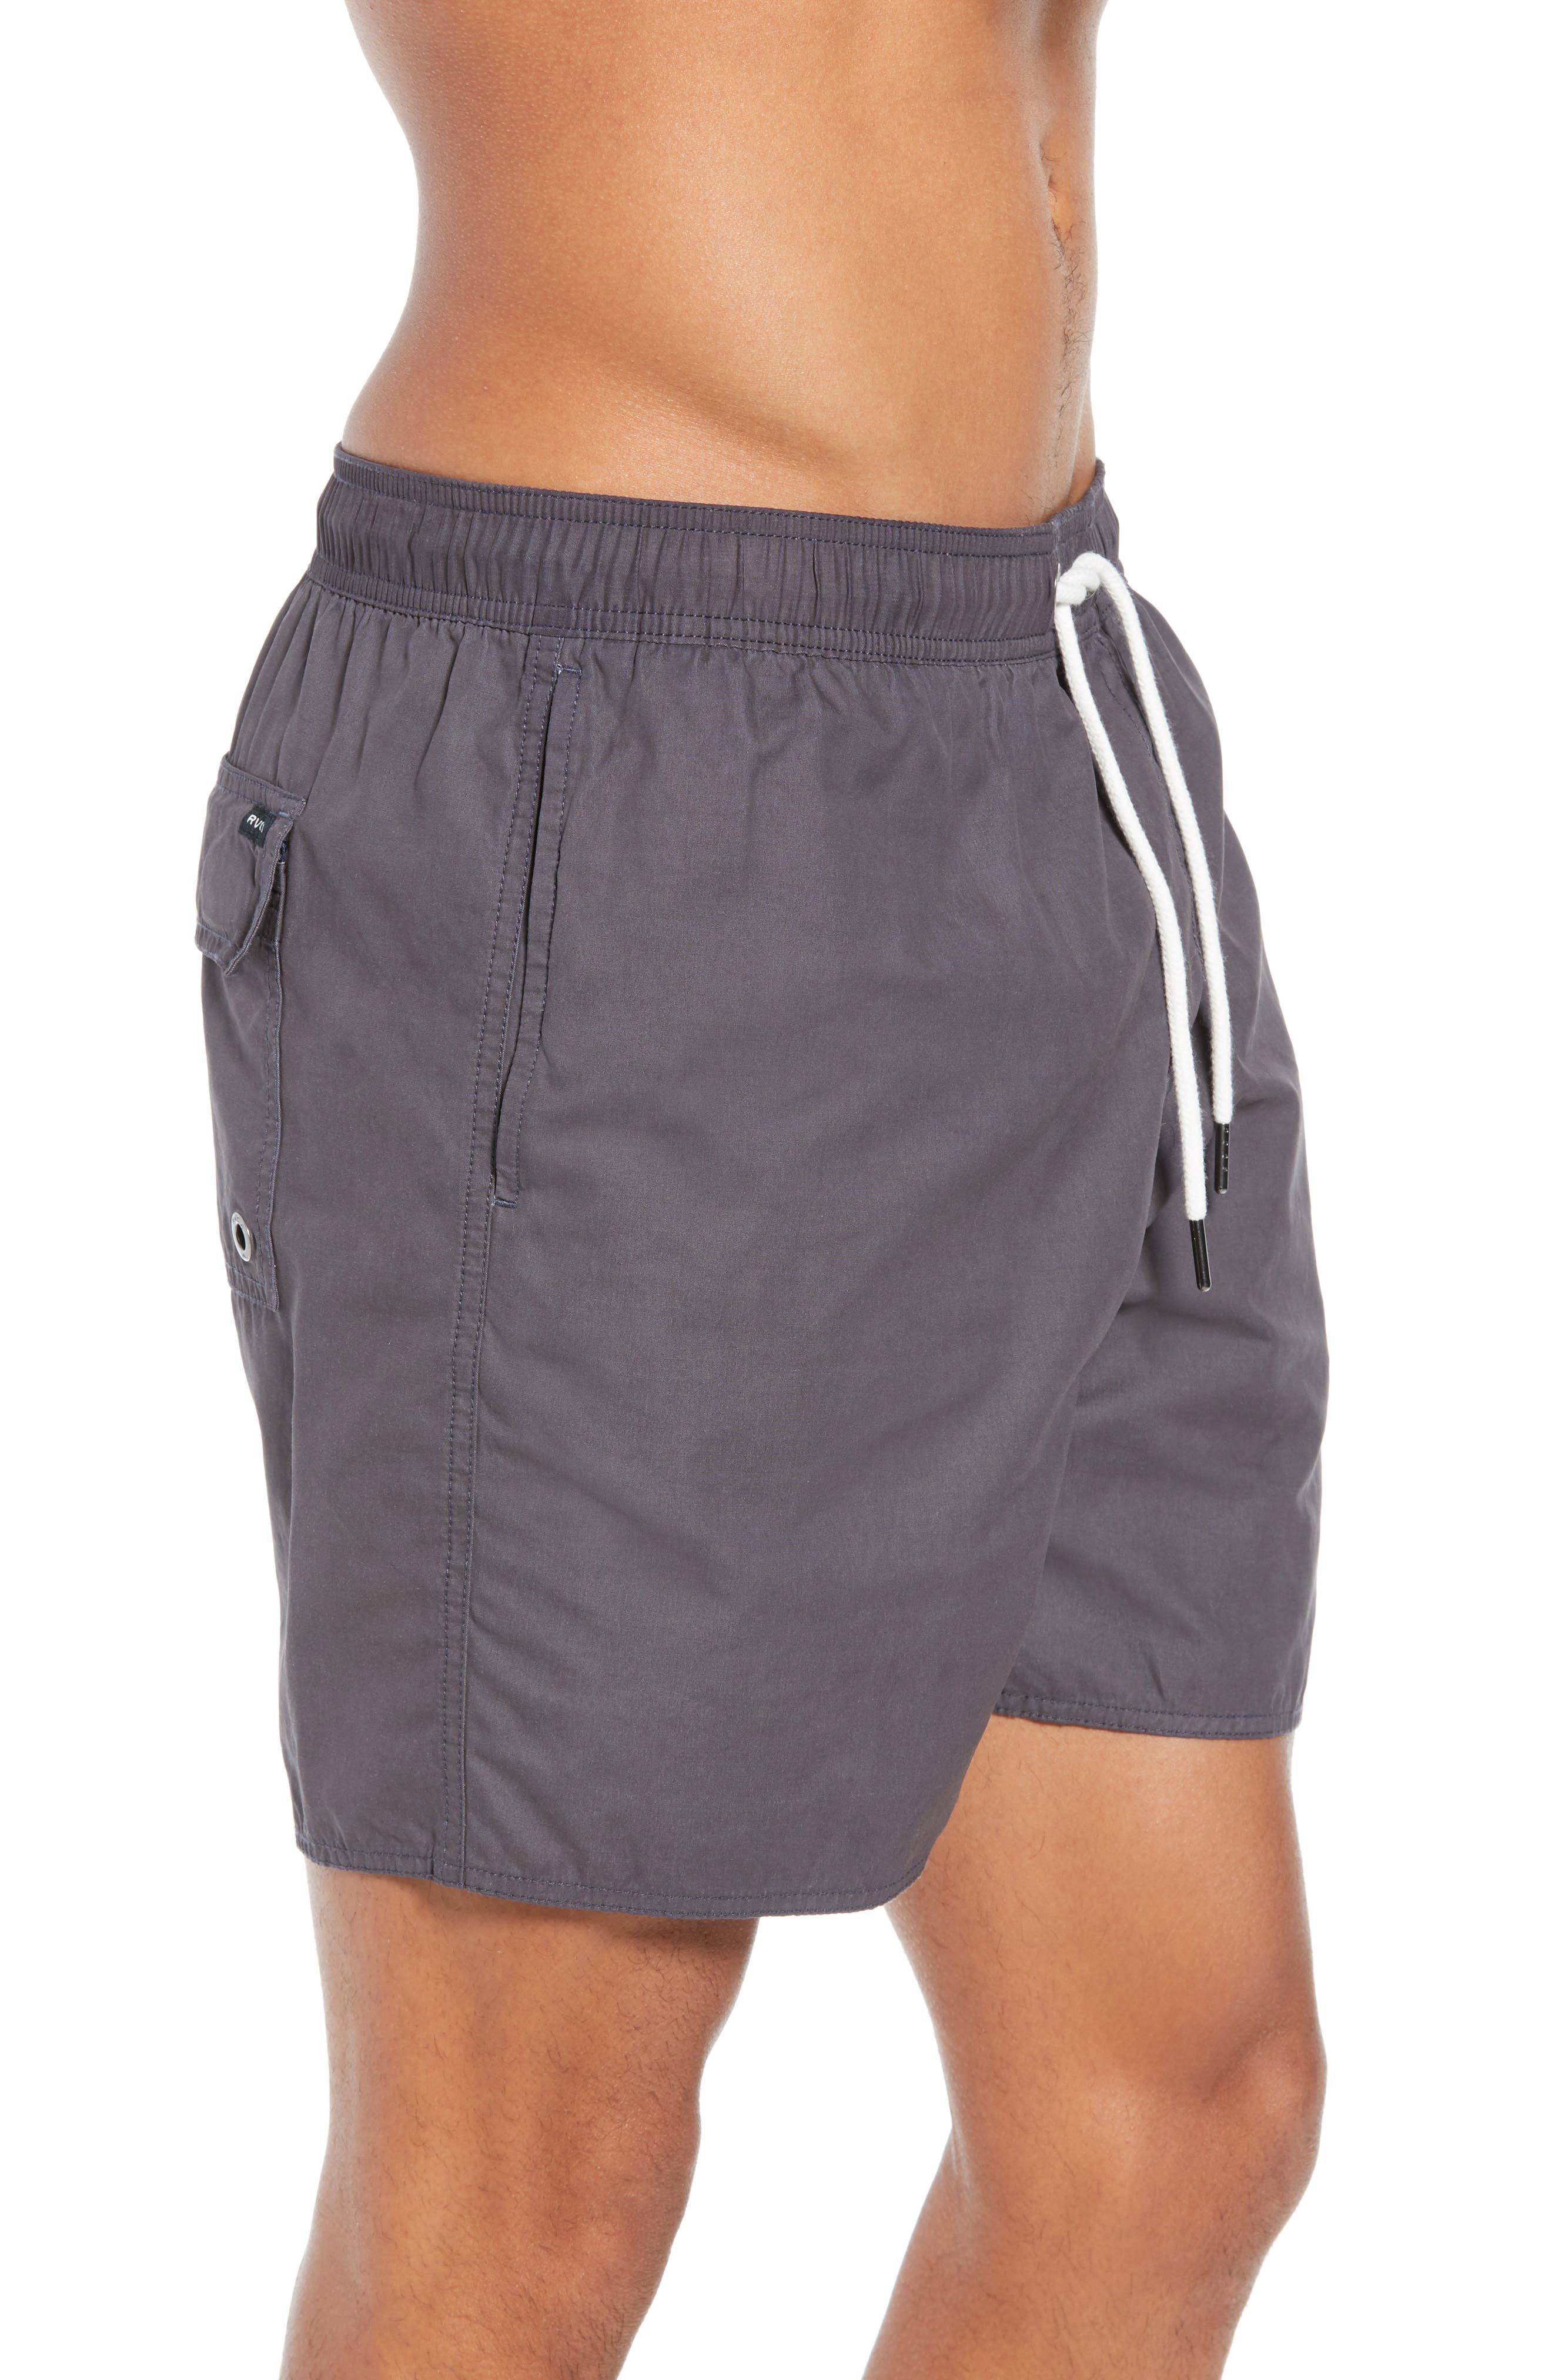 Horton Swim Trunks,                             Alternate thumbnail 3, color,                             OIL GREY